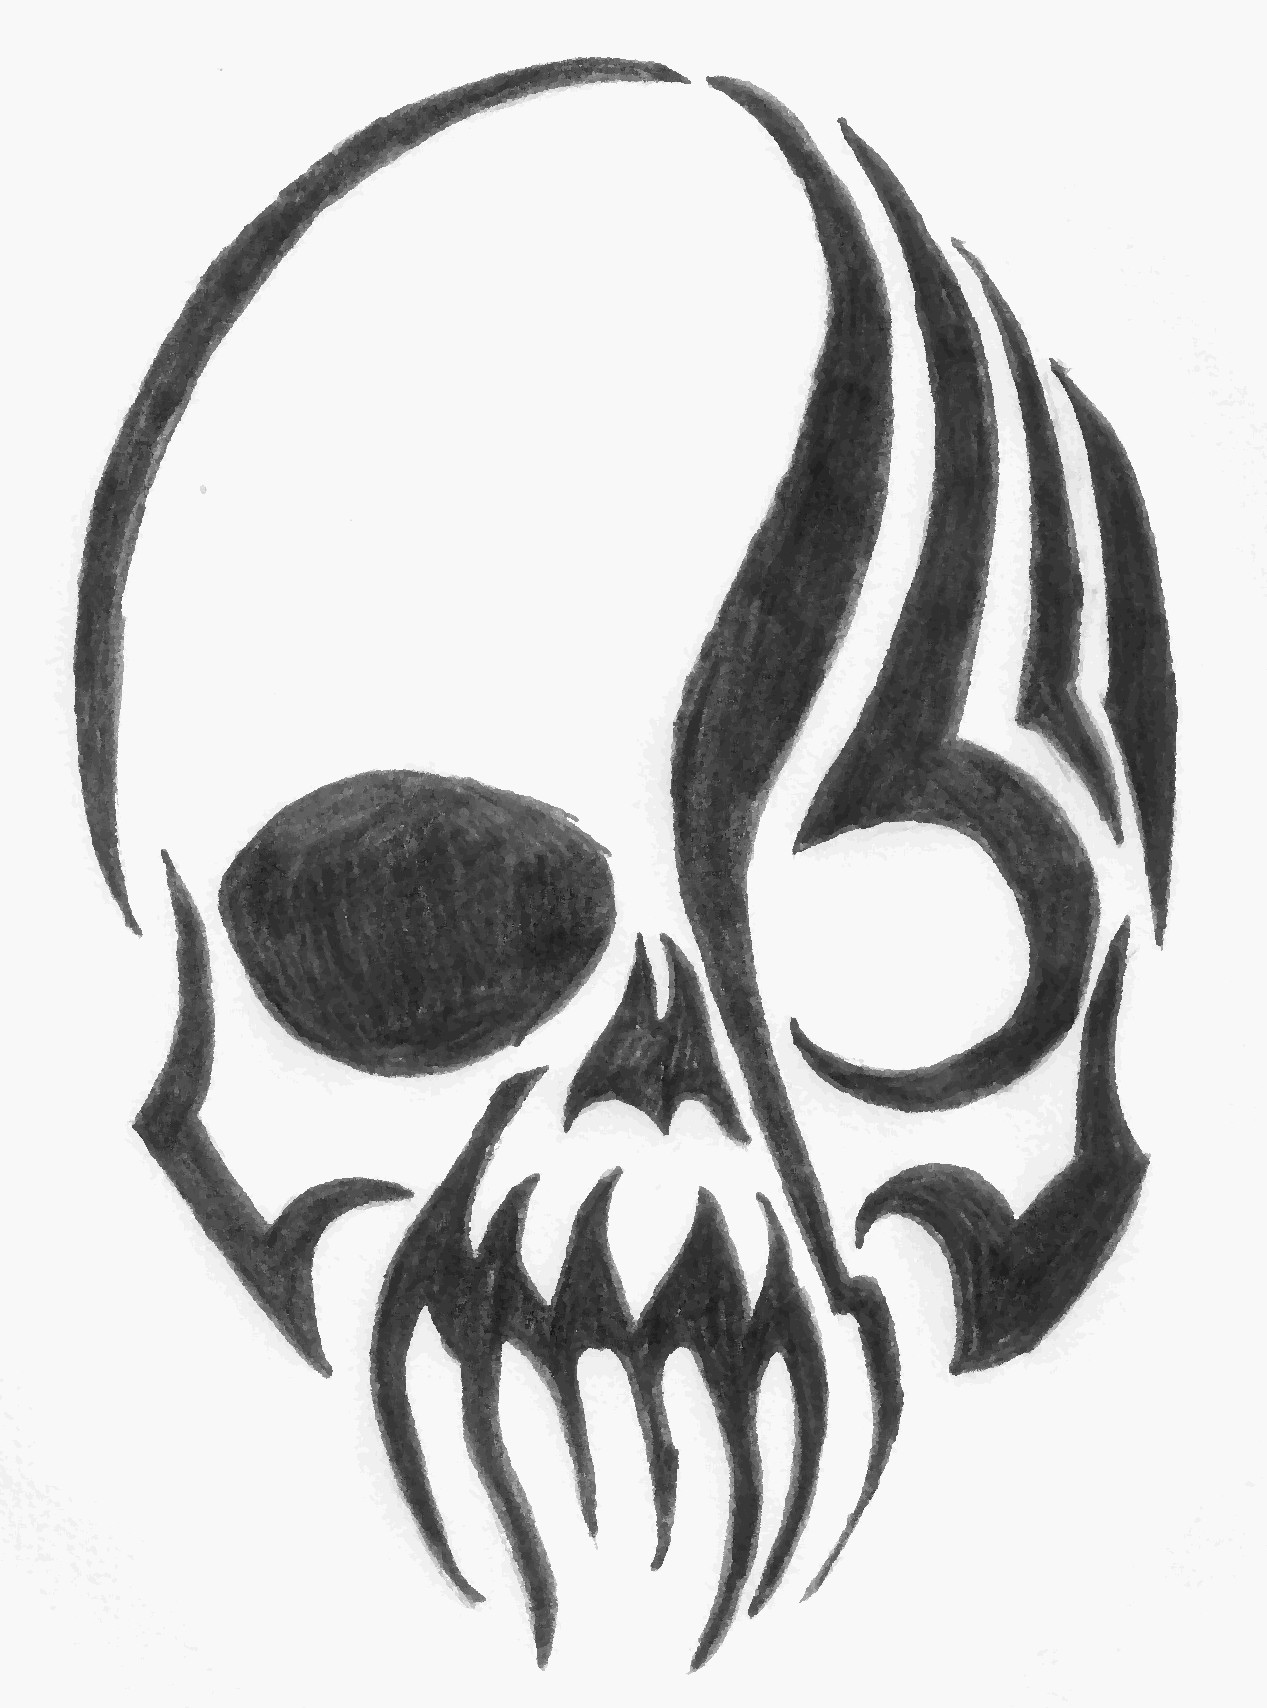 Drawn ssckull tribal Library Free Free on Clip